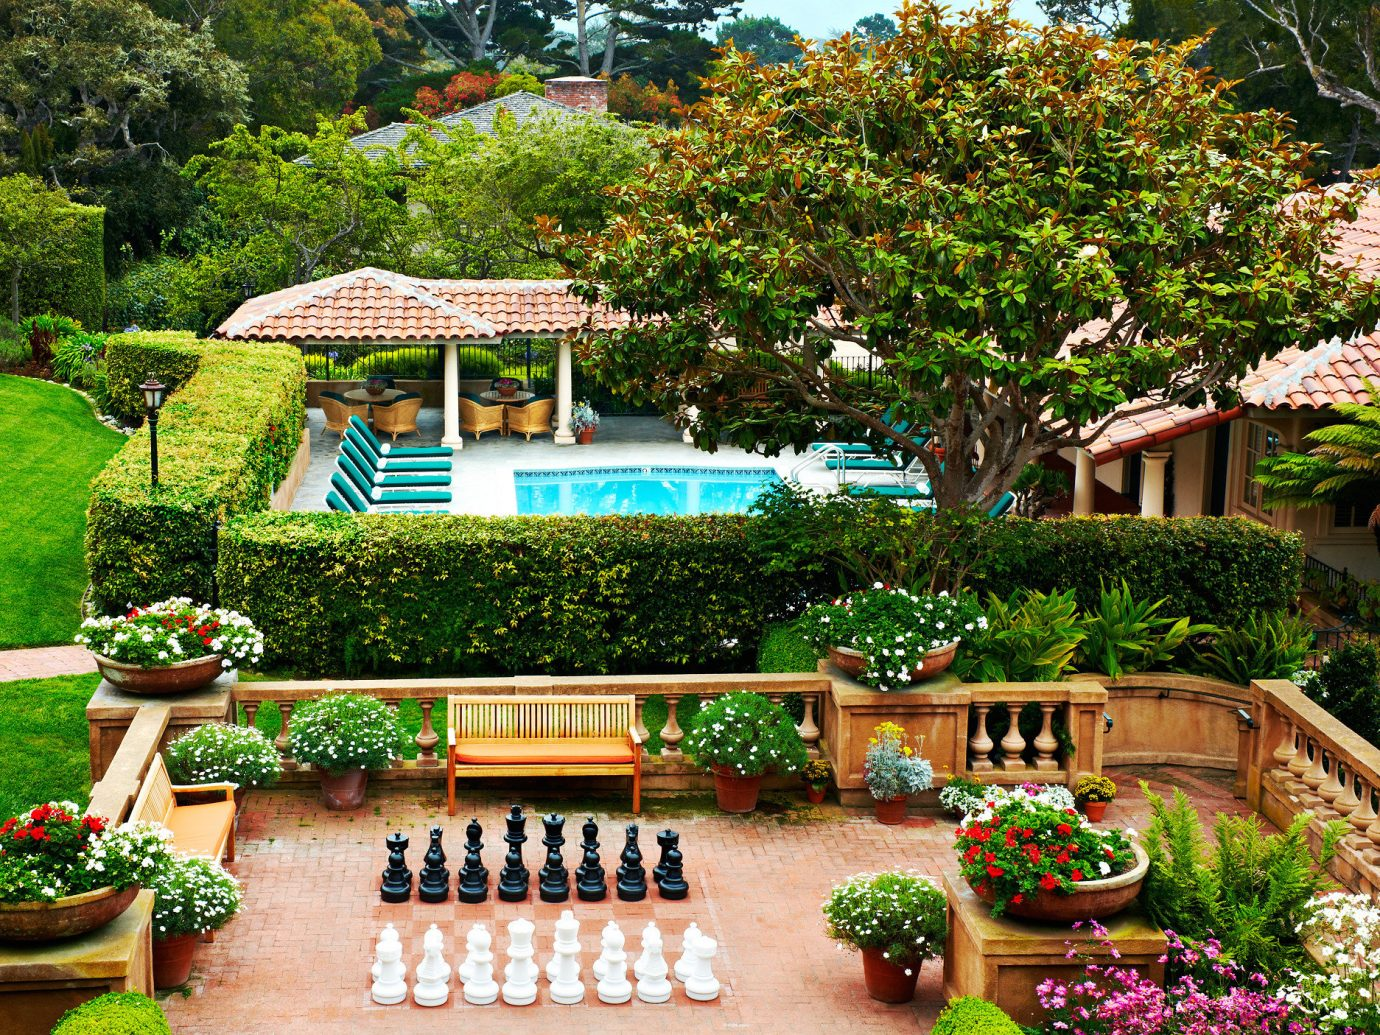 Food + Drink Garden Grounds Play Pool Resort tree outdoor flower plant botany backyard estate yard Courtyard botanical garden home park landscape architect outdoor structure lawn landscaping bushes decorated colorful